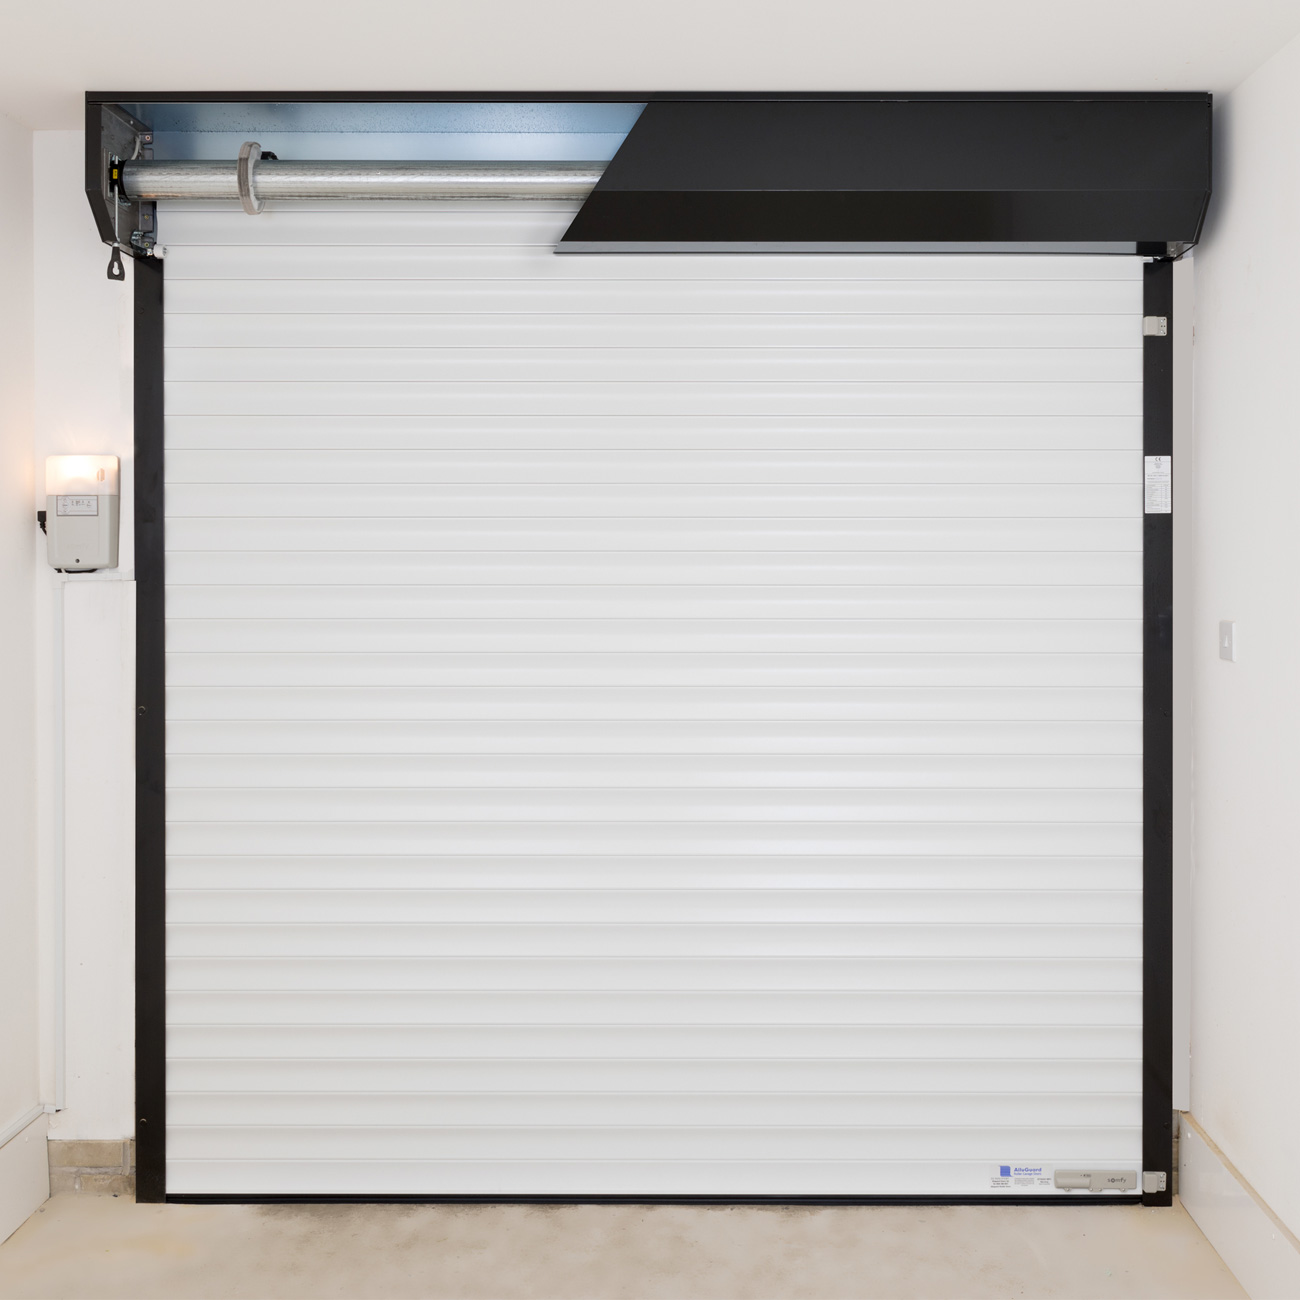 Alluguard 55 compact roller shutter rear view Somfy controls